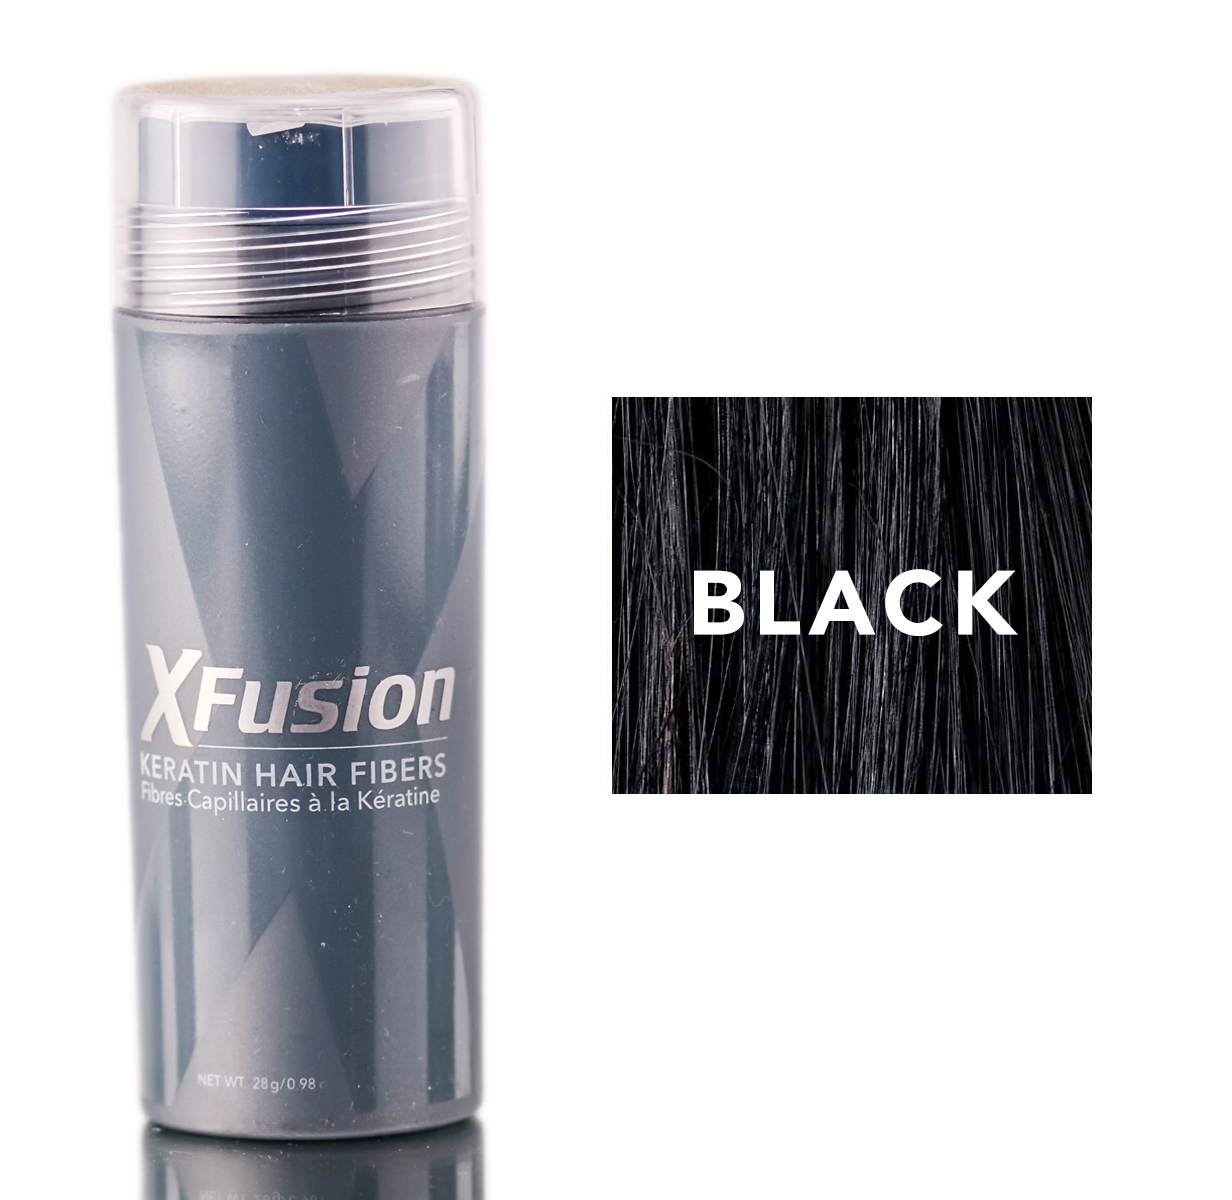 XFusion Black Keratin Hair Fibers (Size : 0.98 oz)